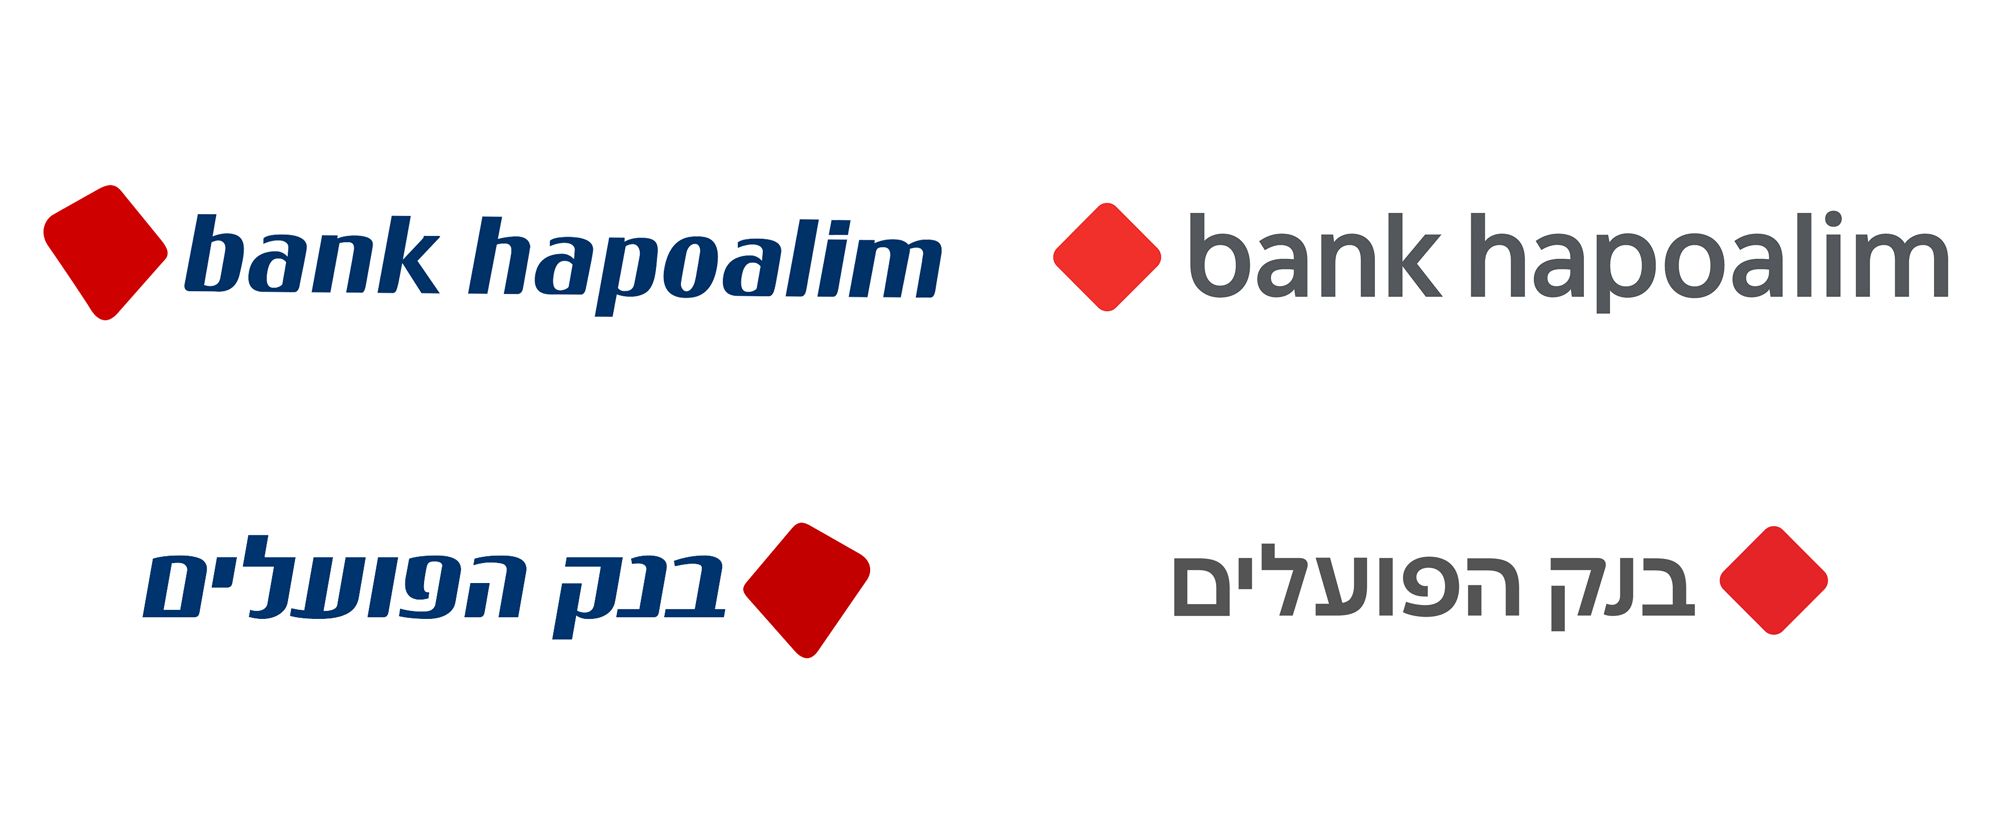 New Logo and Identity for Bank Hapoalim by Open